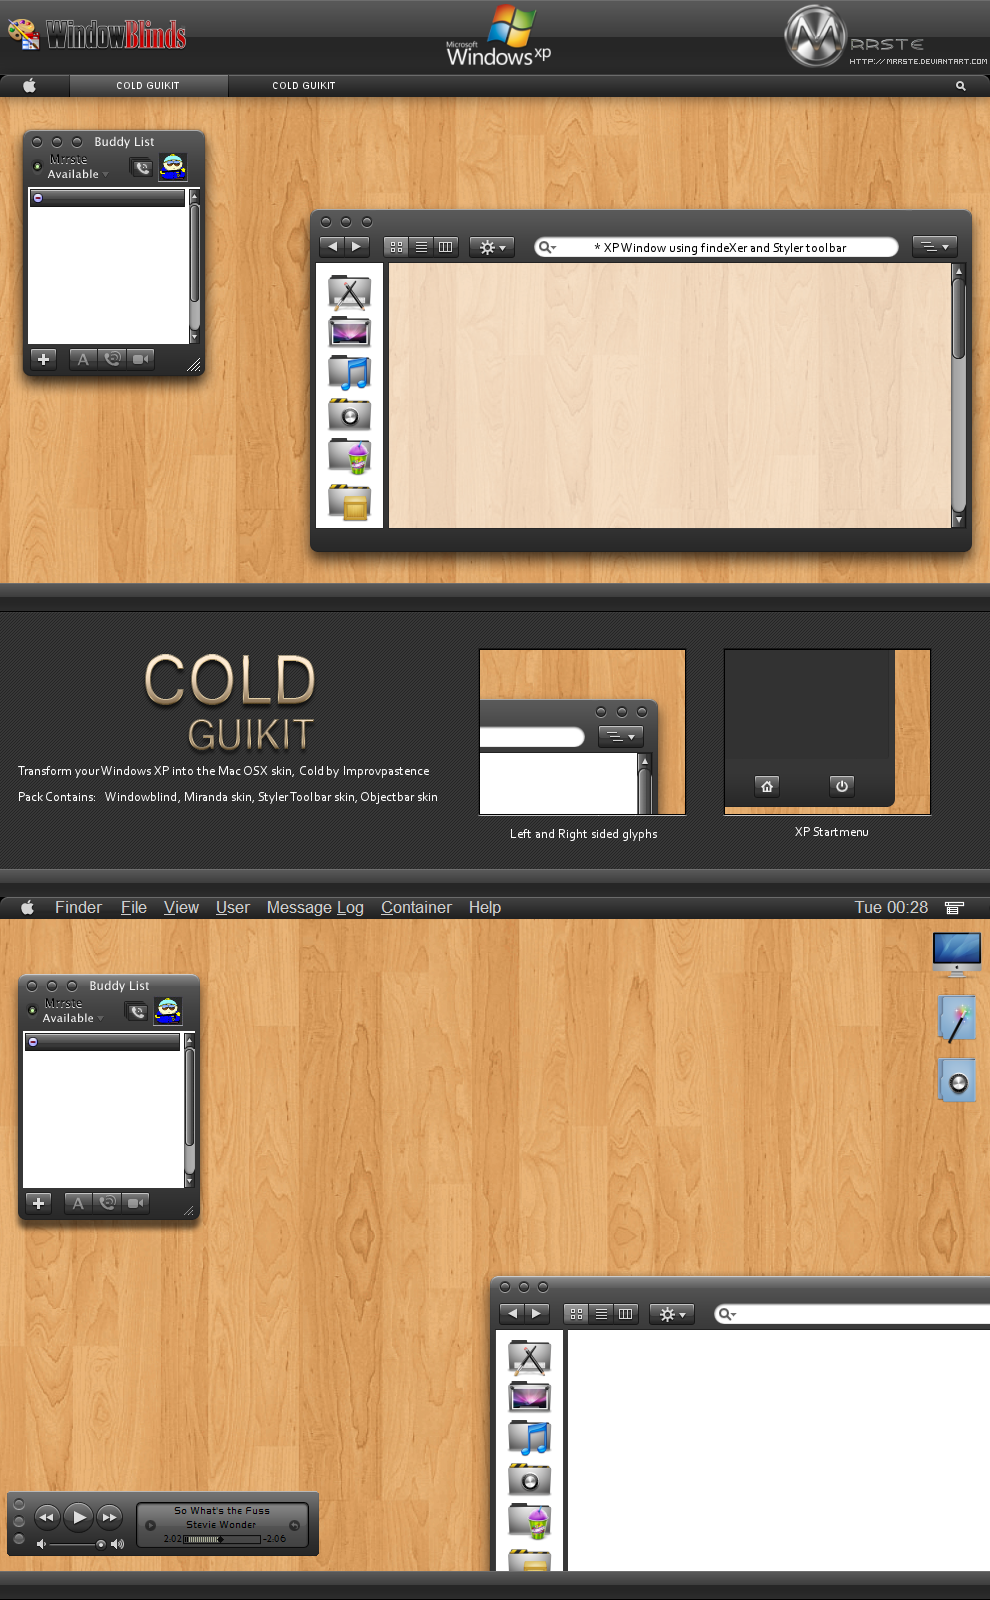 Cold GUI FINAL UPDATE by mrrste